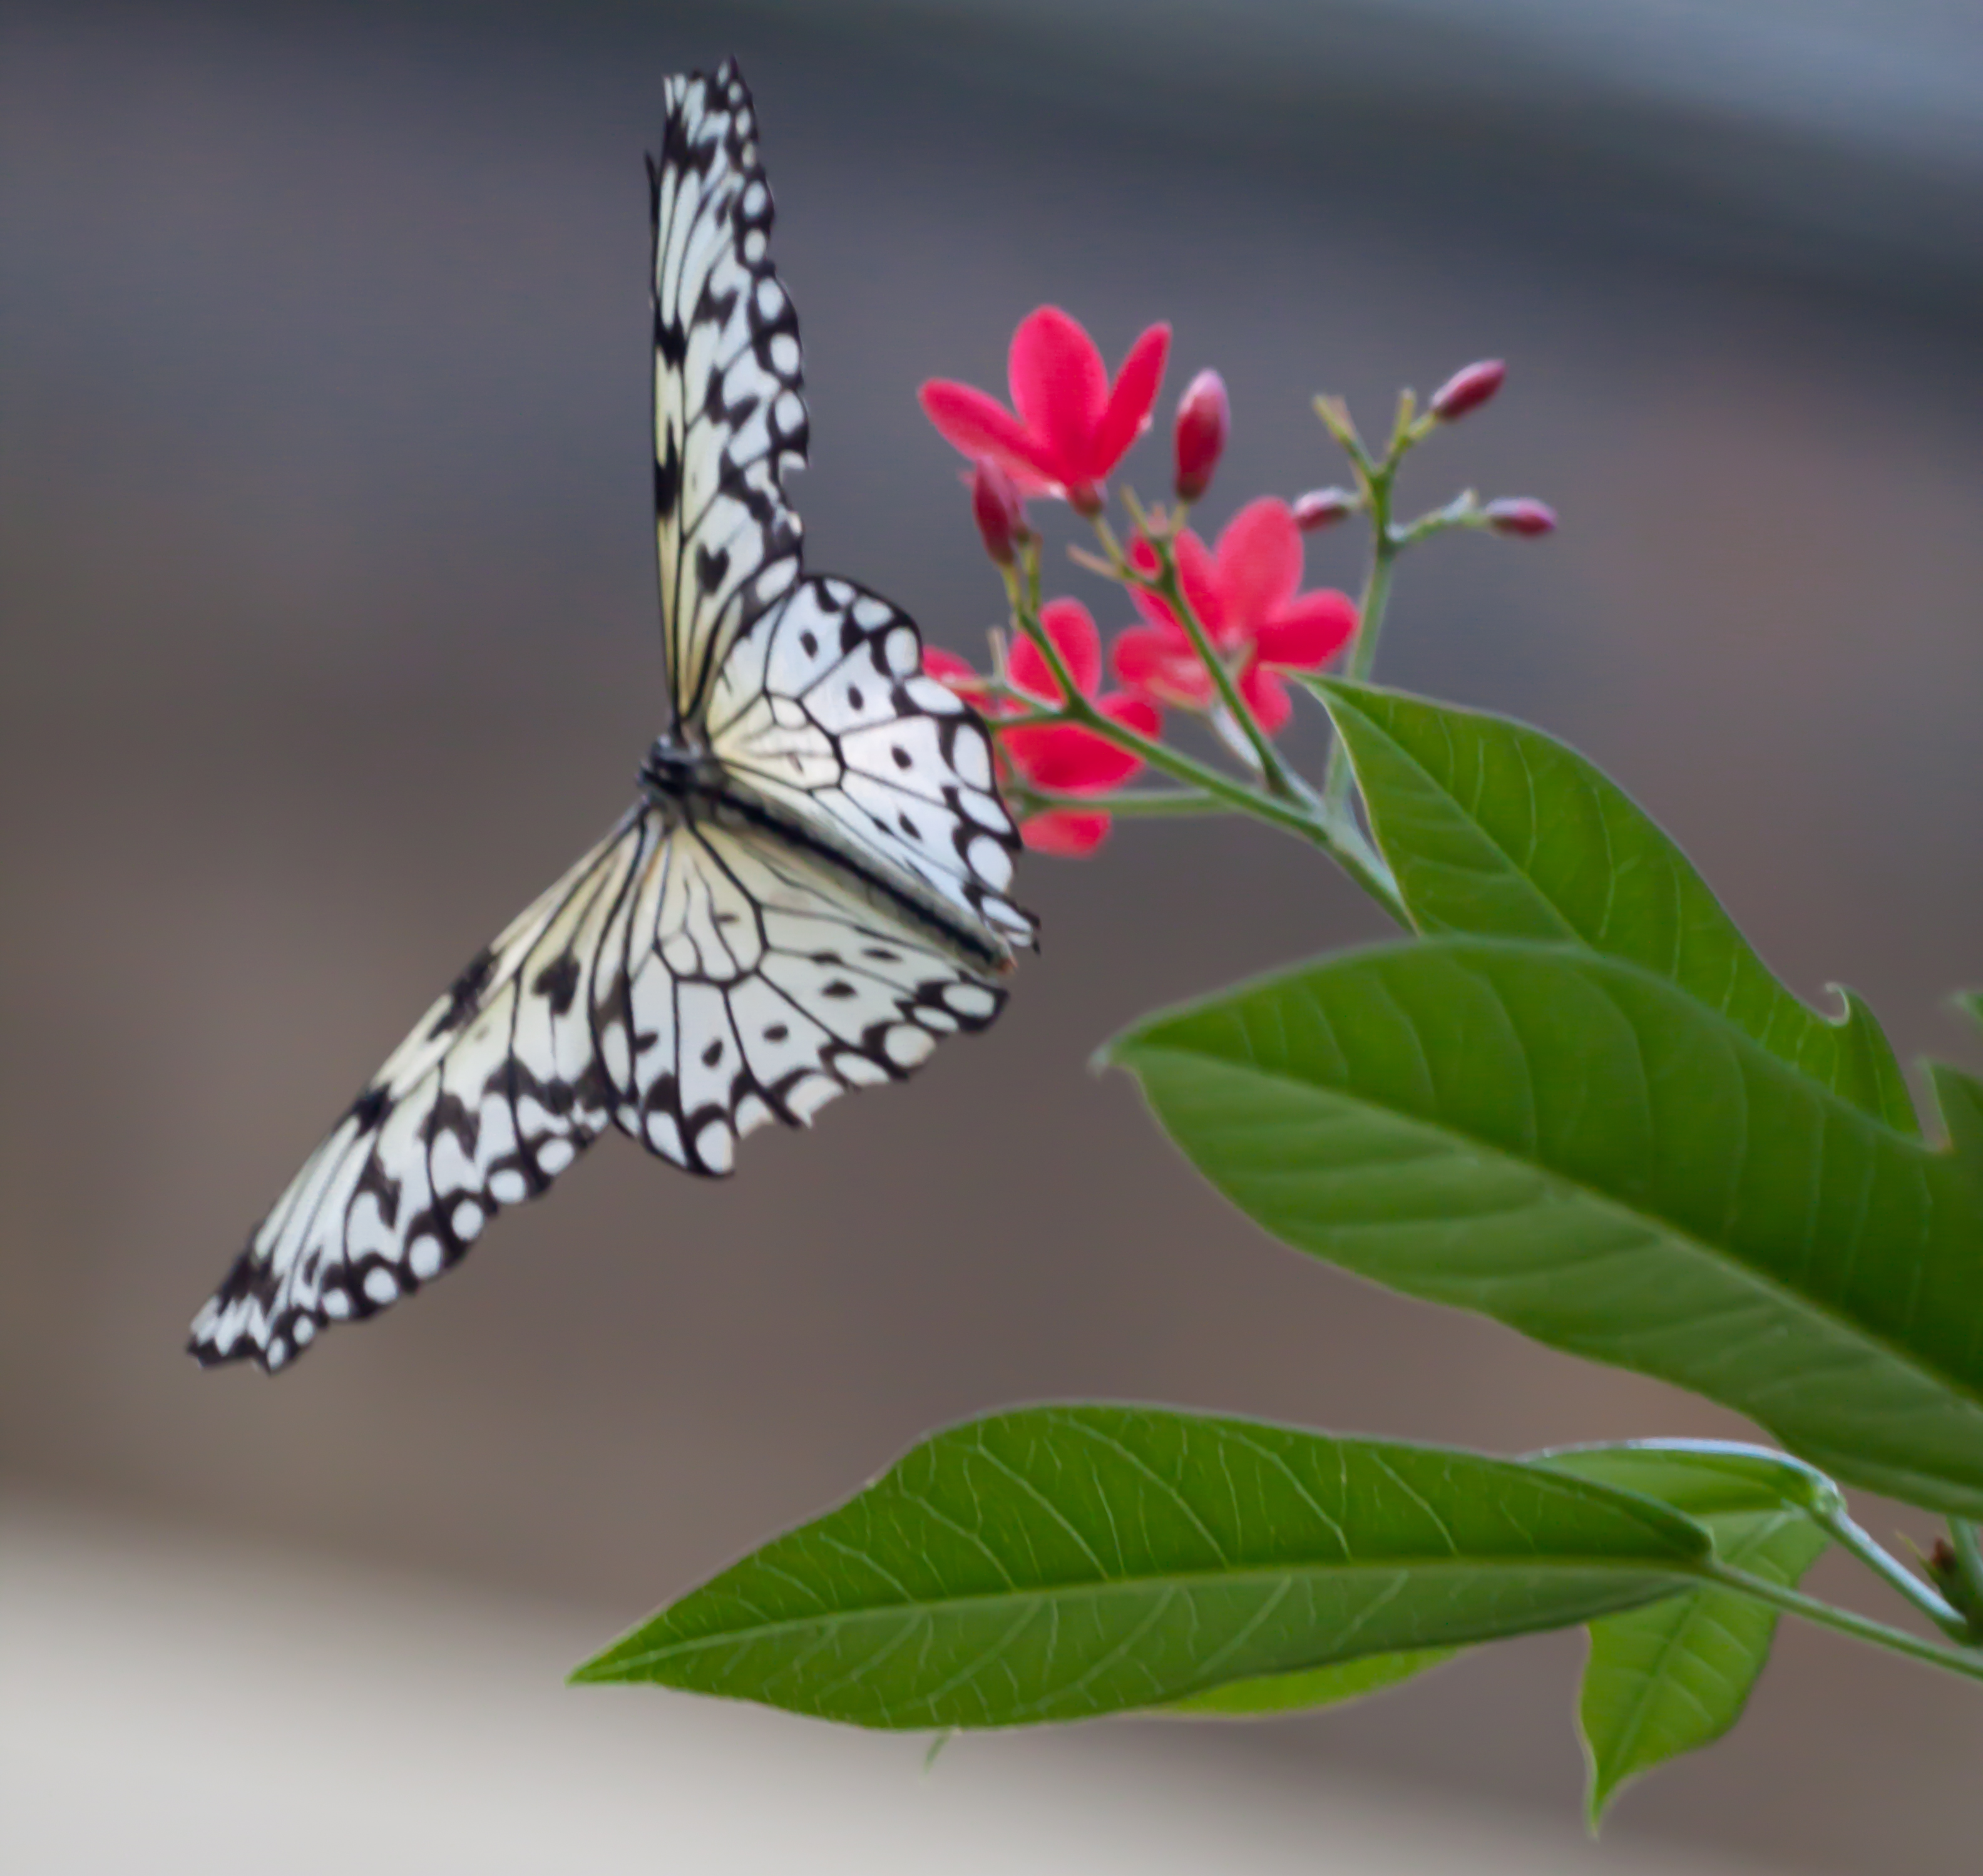 Butterfly flying away - photo#32